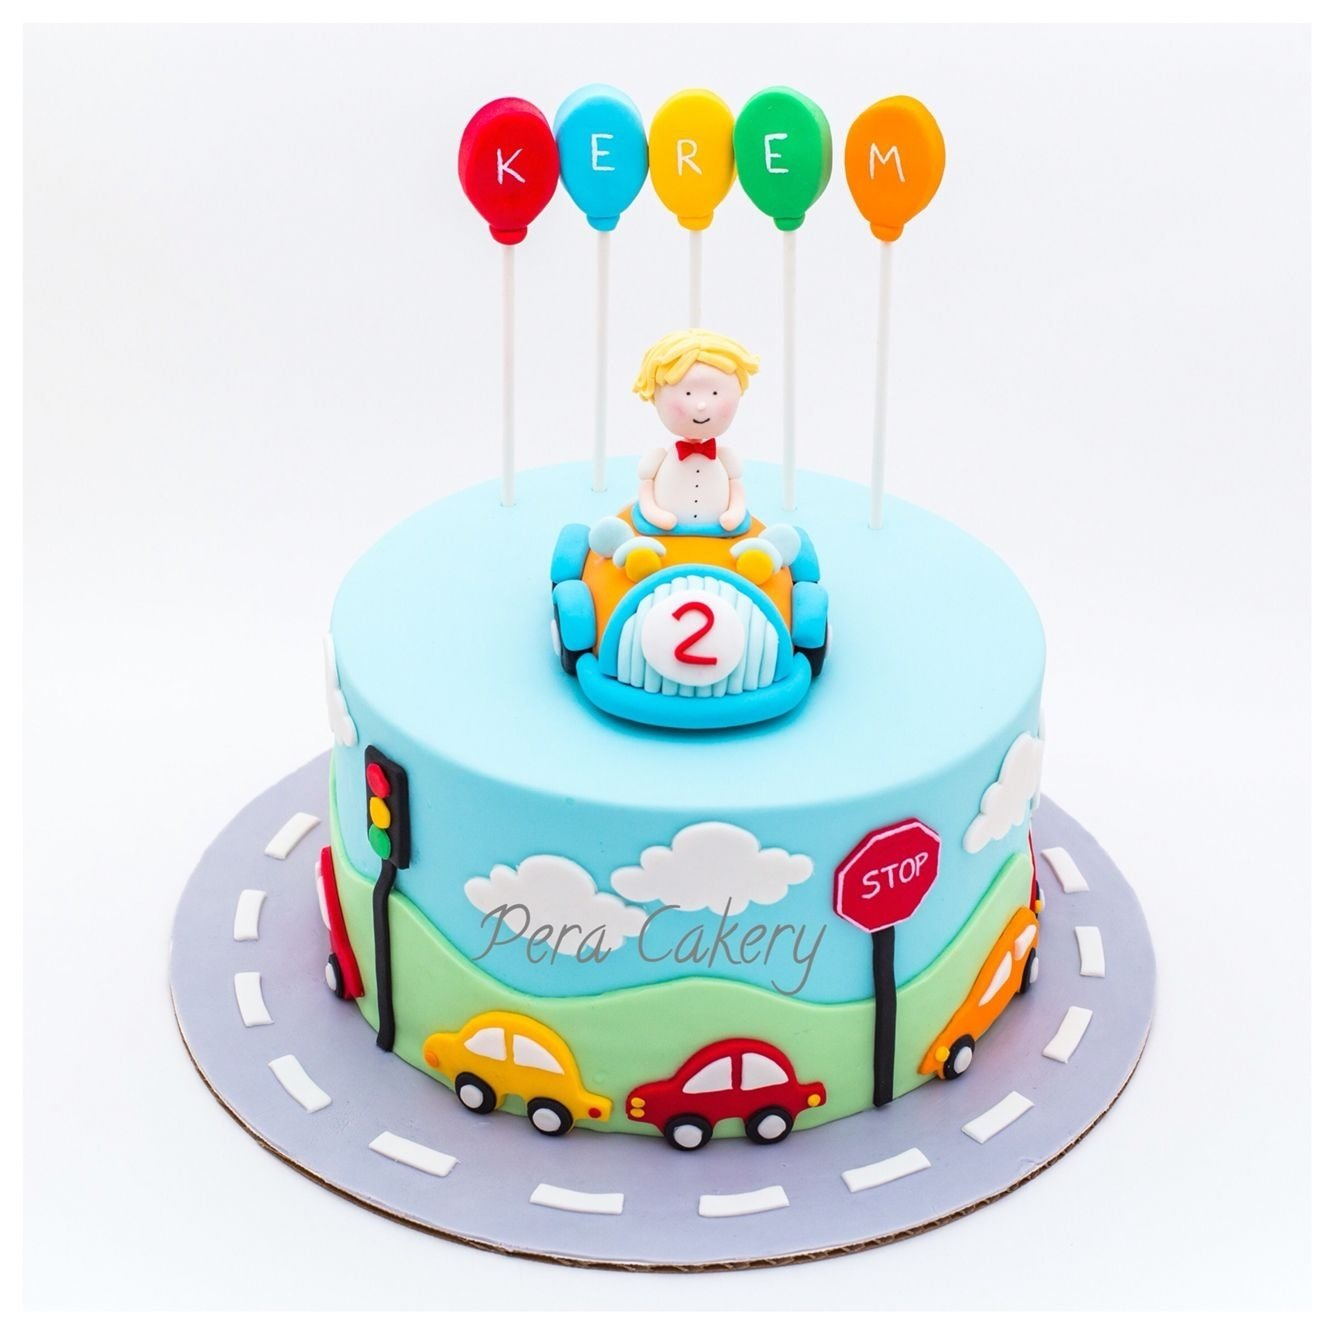 car cake for a 2 year old boy | pera cakery cakes | pinterest | car